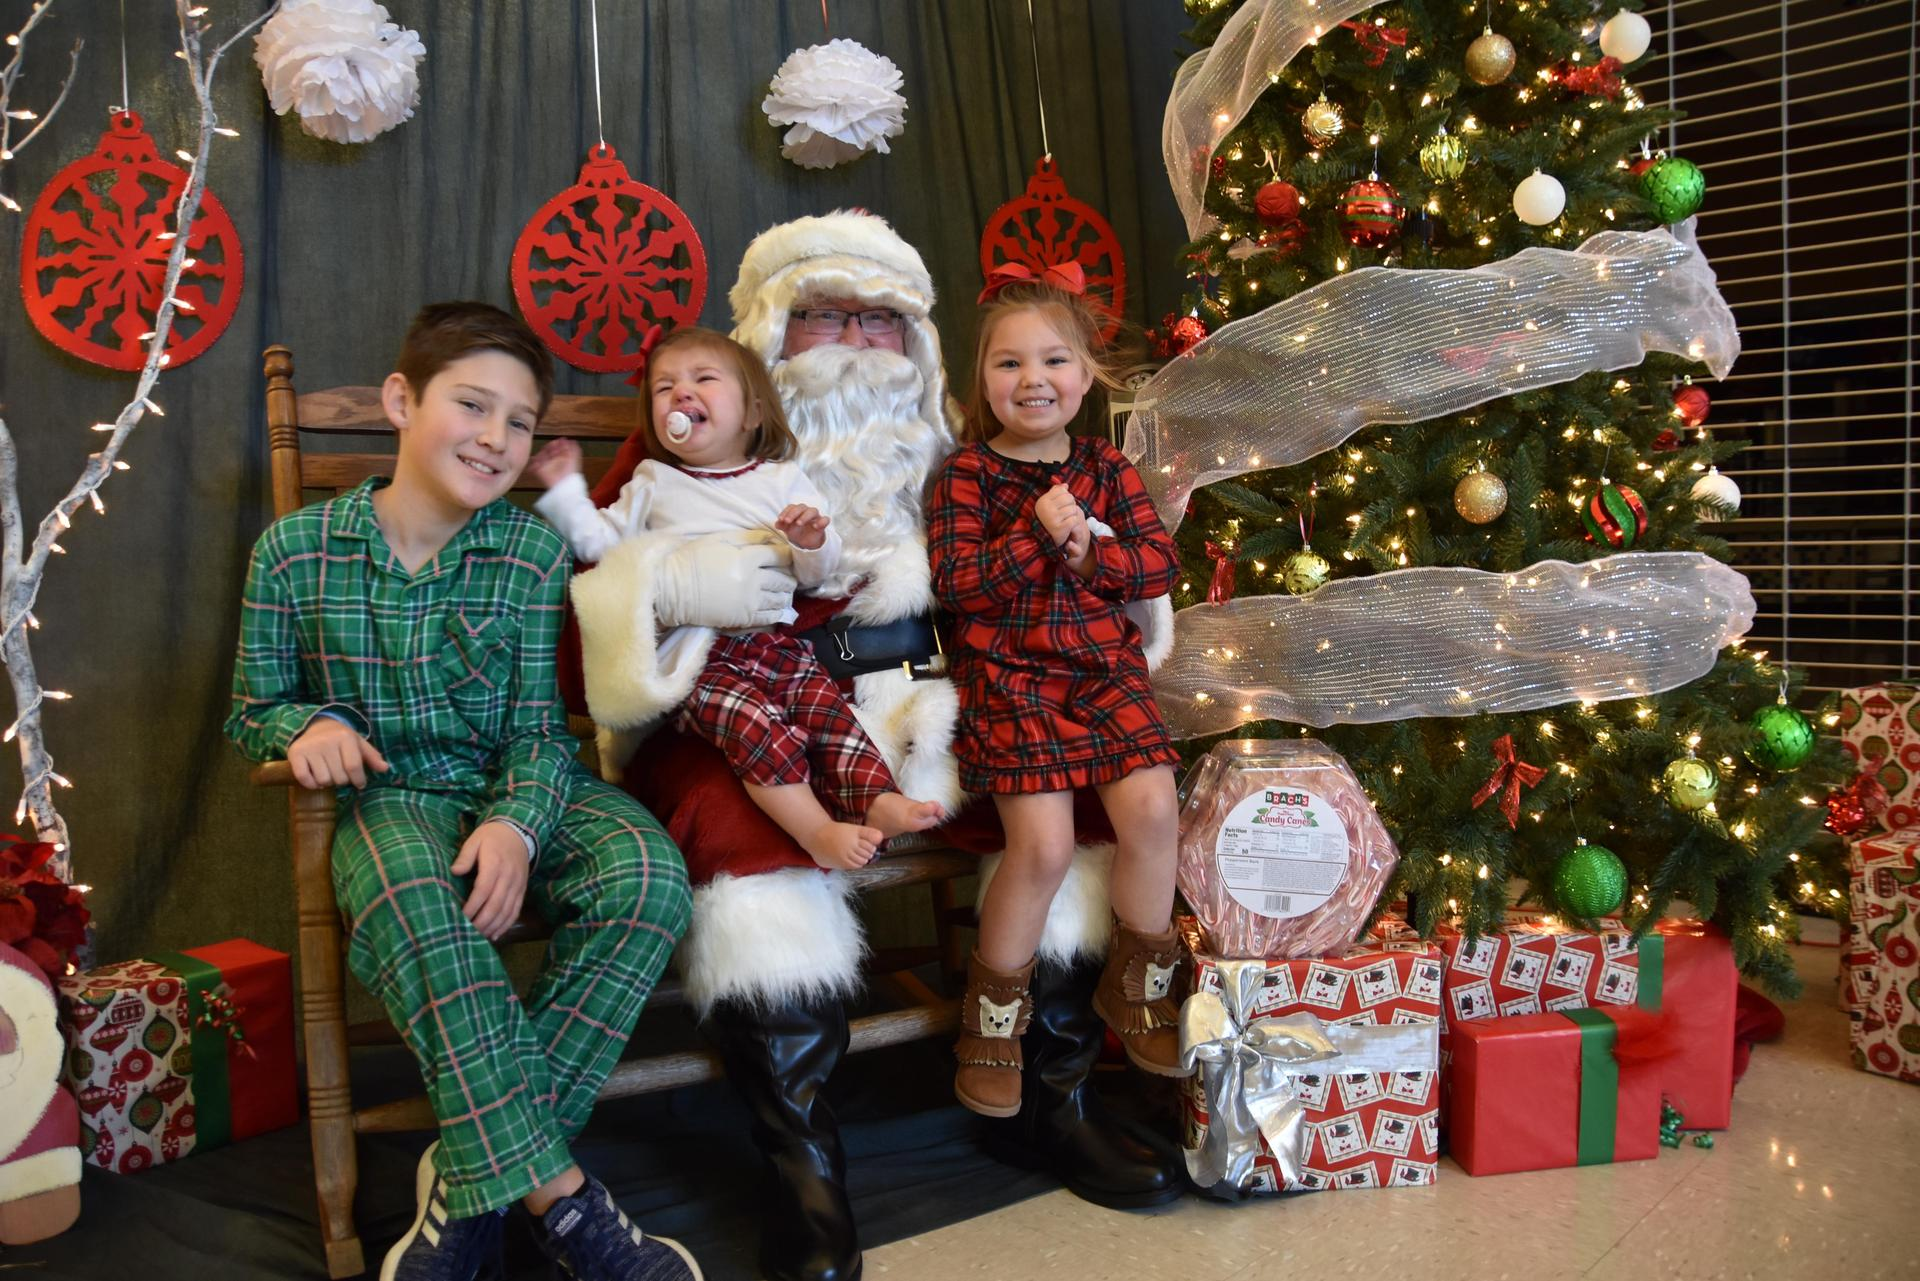 The WSISD Education Foundation and the White Settlement Chamber of Commerce sponsored our 3rd annual Pancakes with Santa event on Dec. 1, which included free photos with Santa.